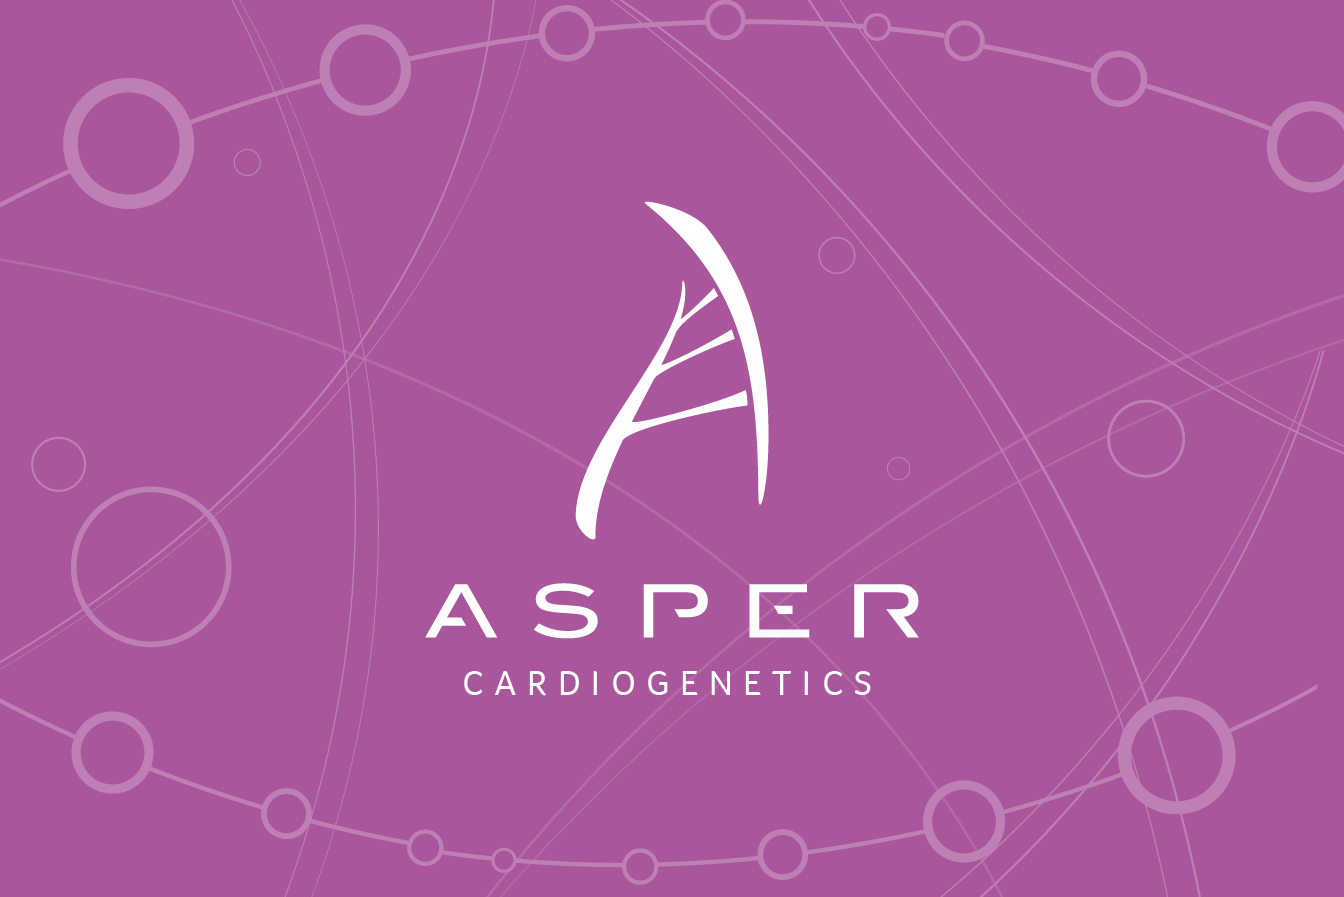 Latest updates in Asper Cardiogenetics